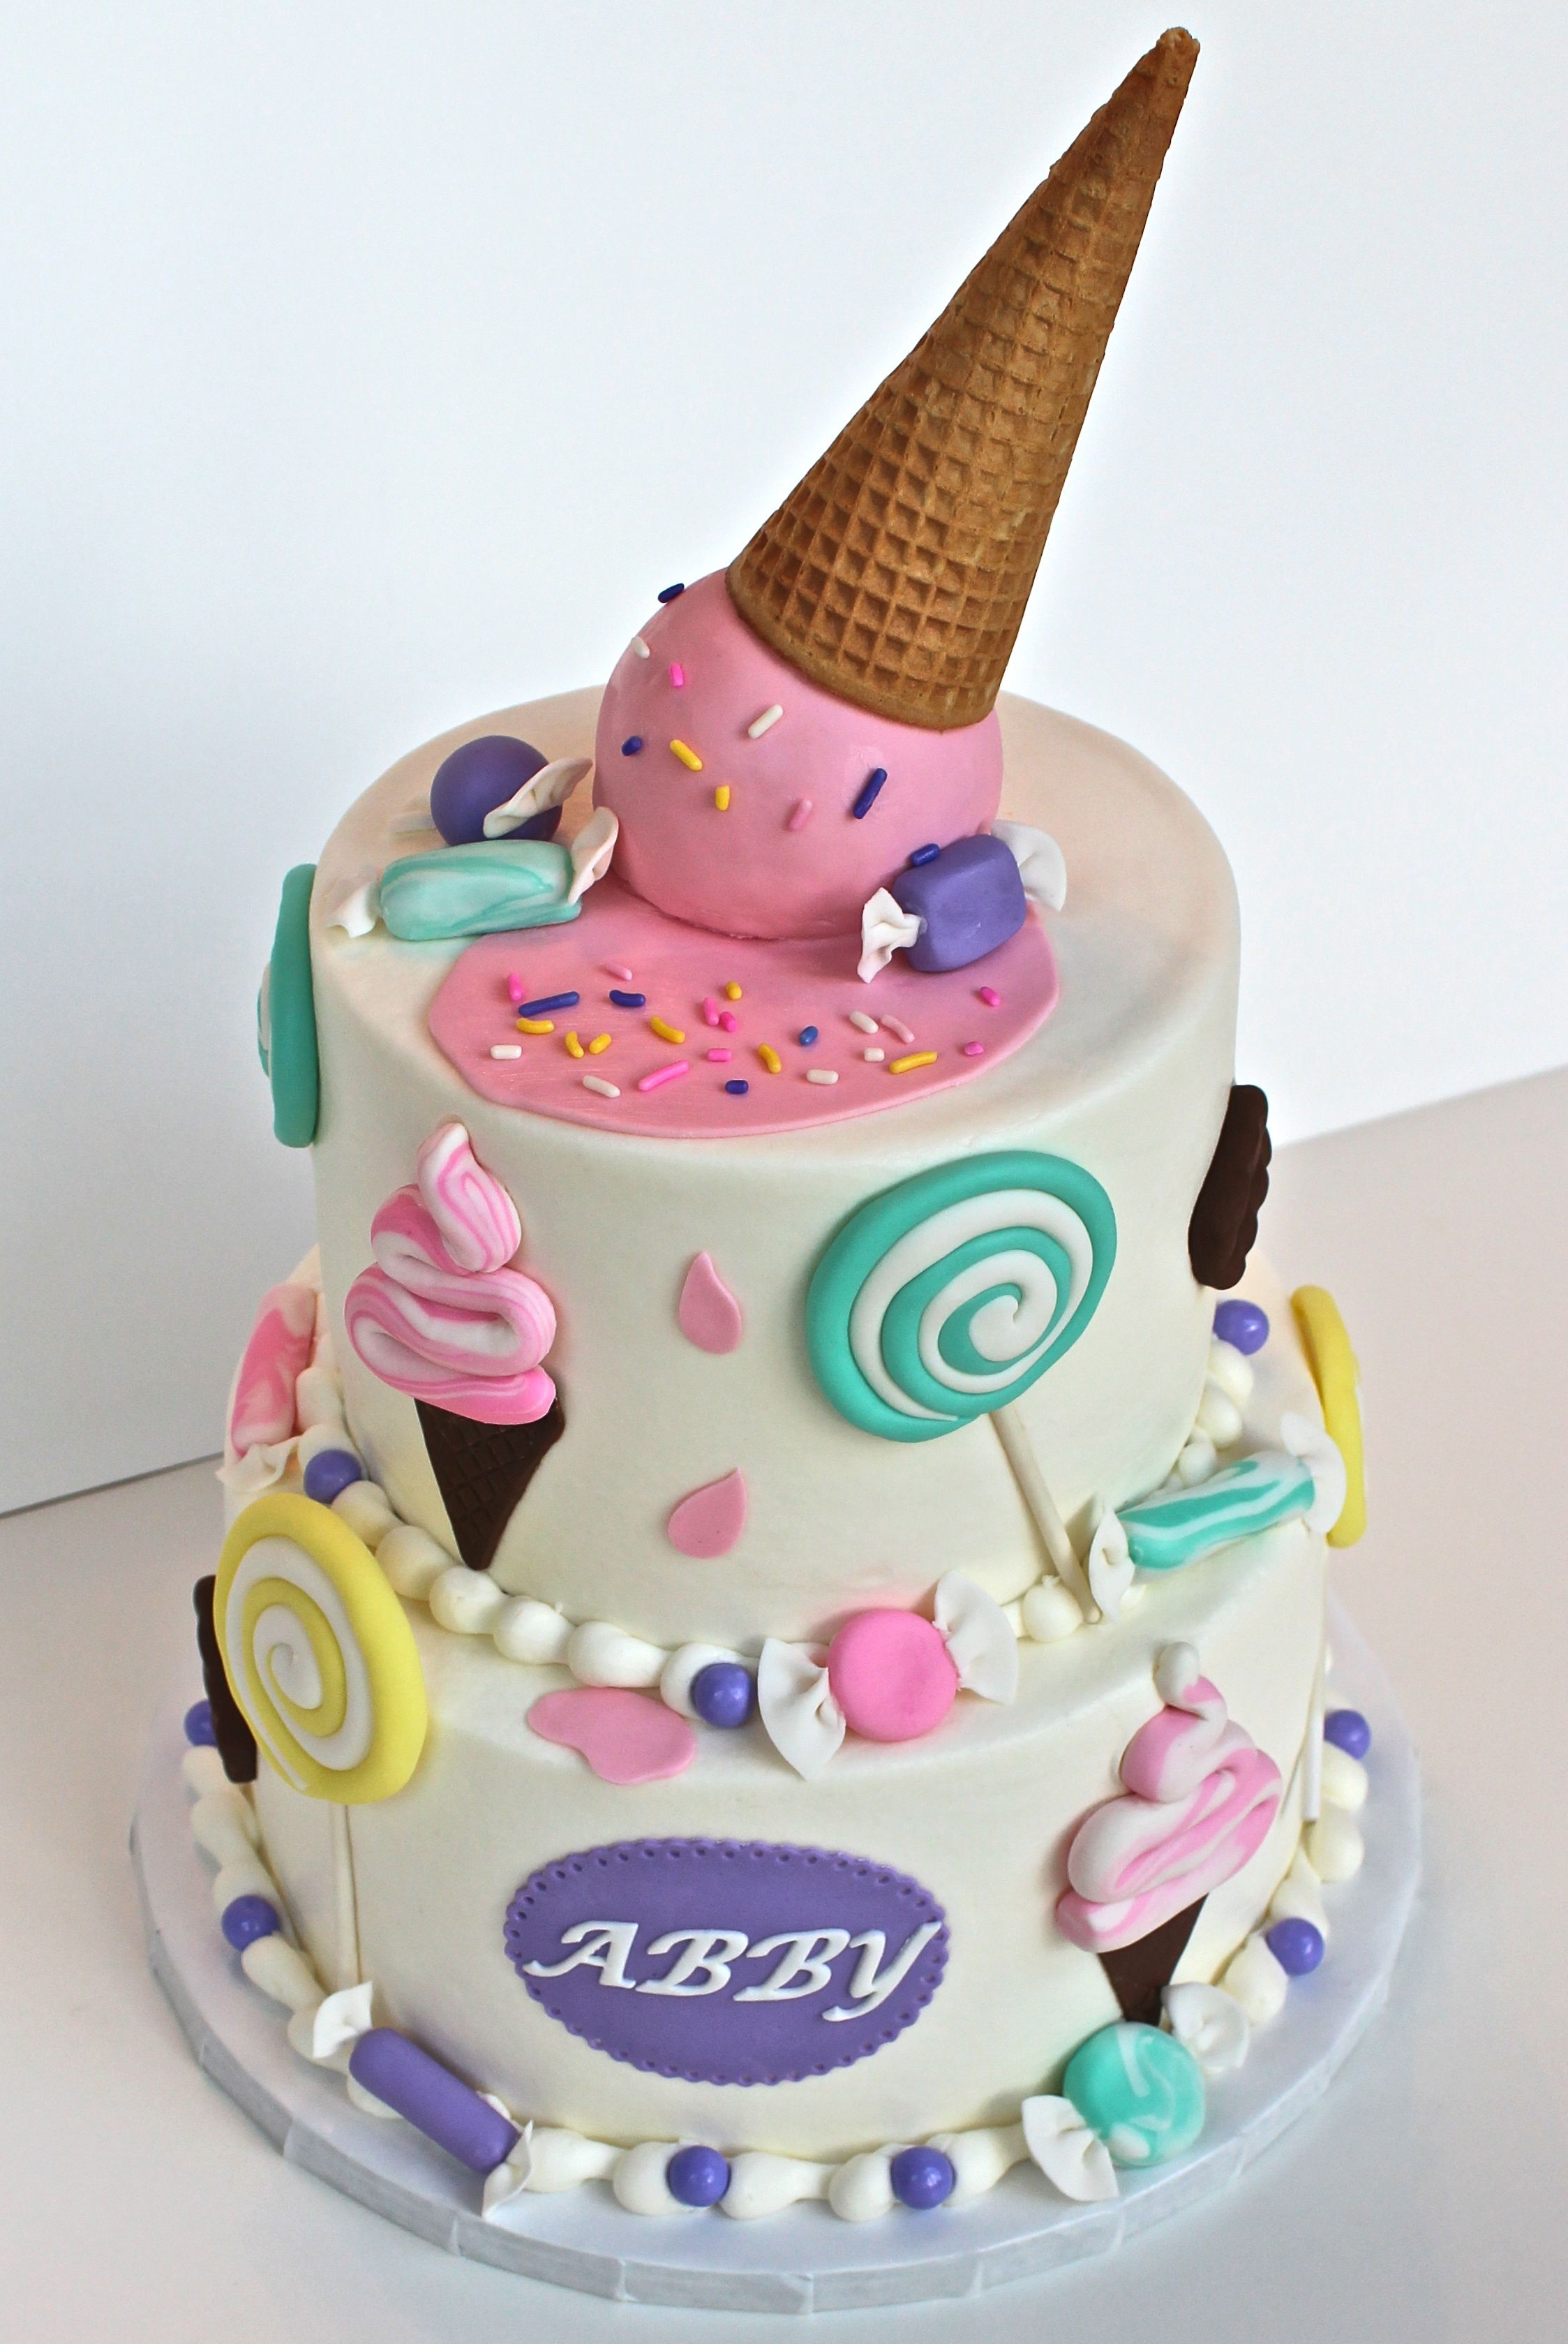 Buttercream Cake With Fondant Decorations Top Ice Cream Ball Is